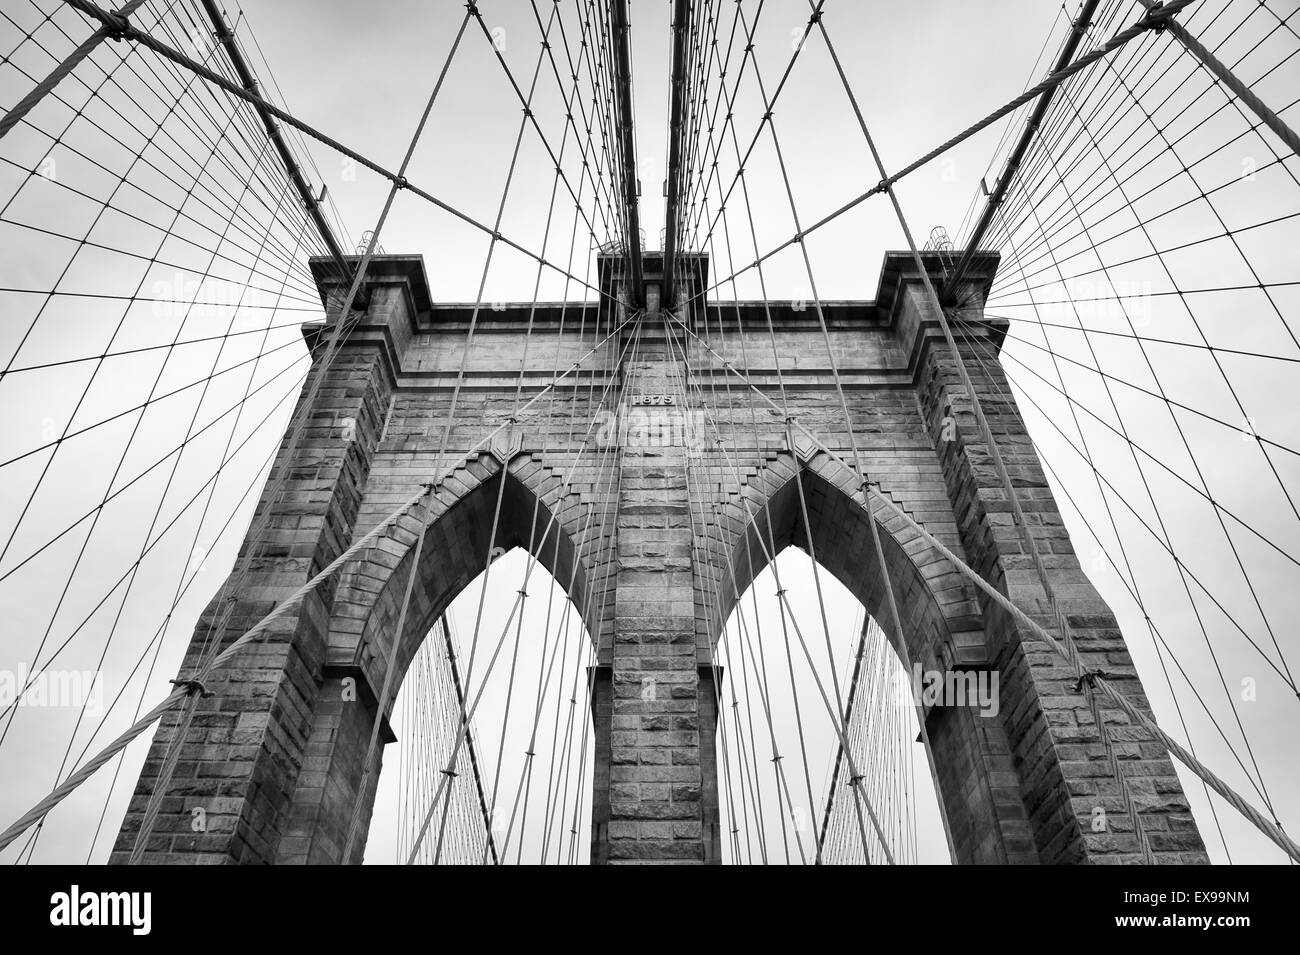 architectural detail photography. Brooklyn Bridge New York City Close Up Architectural Detail In Timeless Black And White Photography N